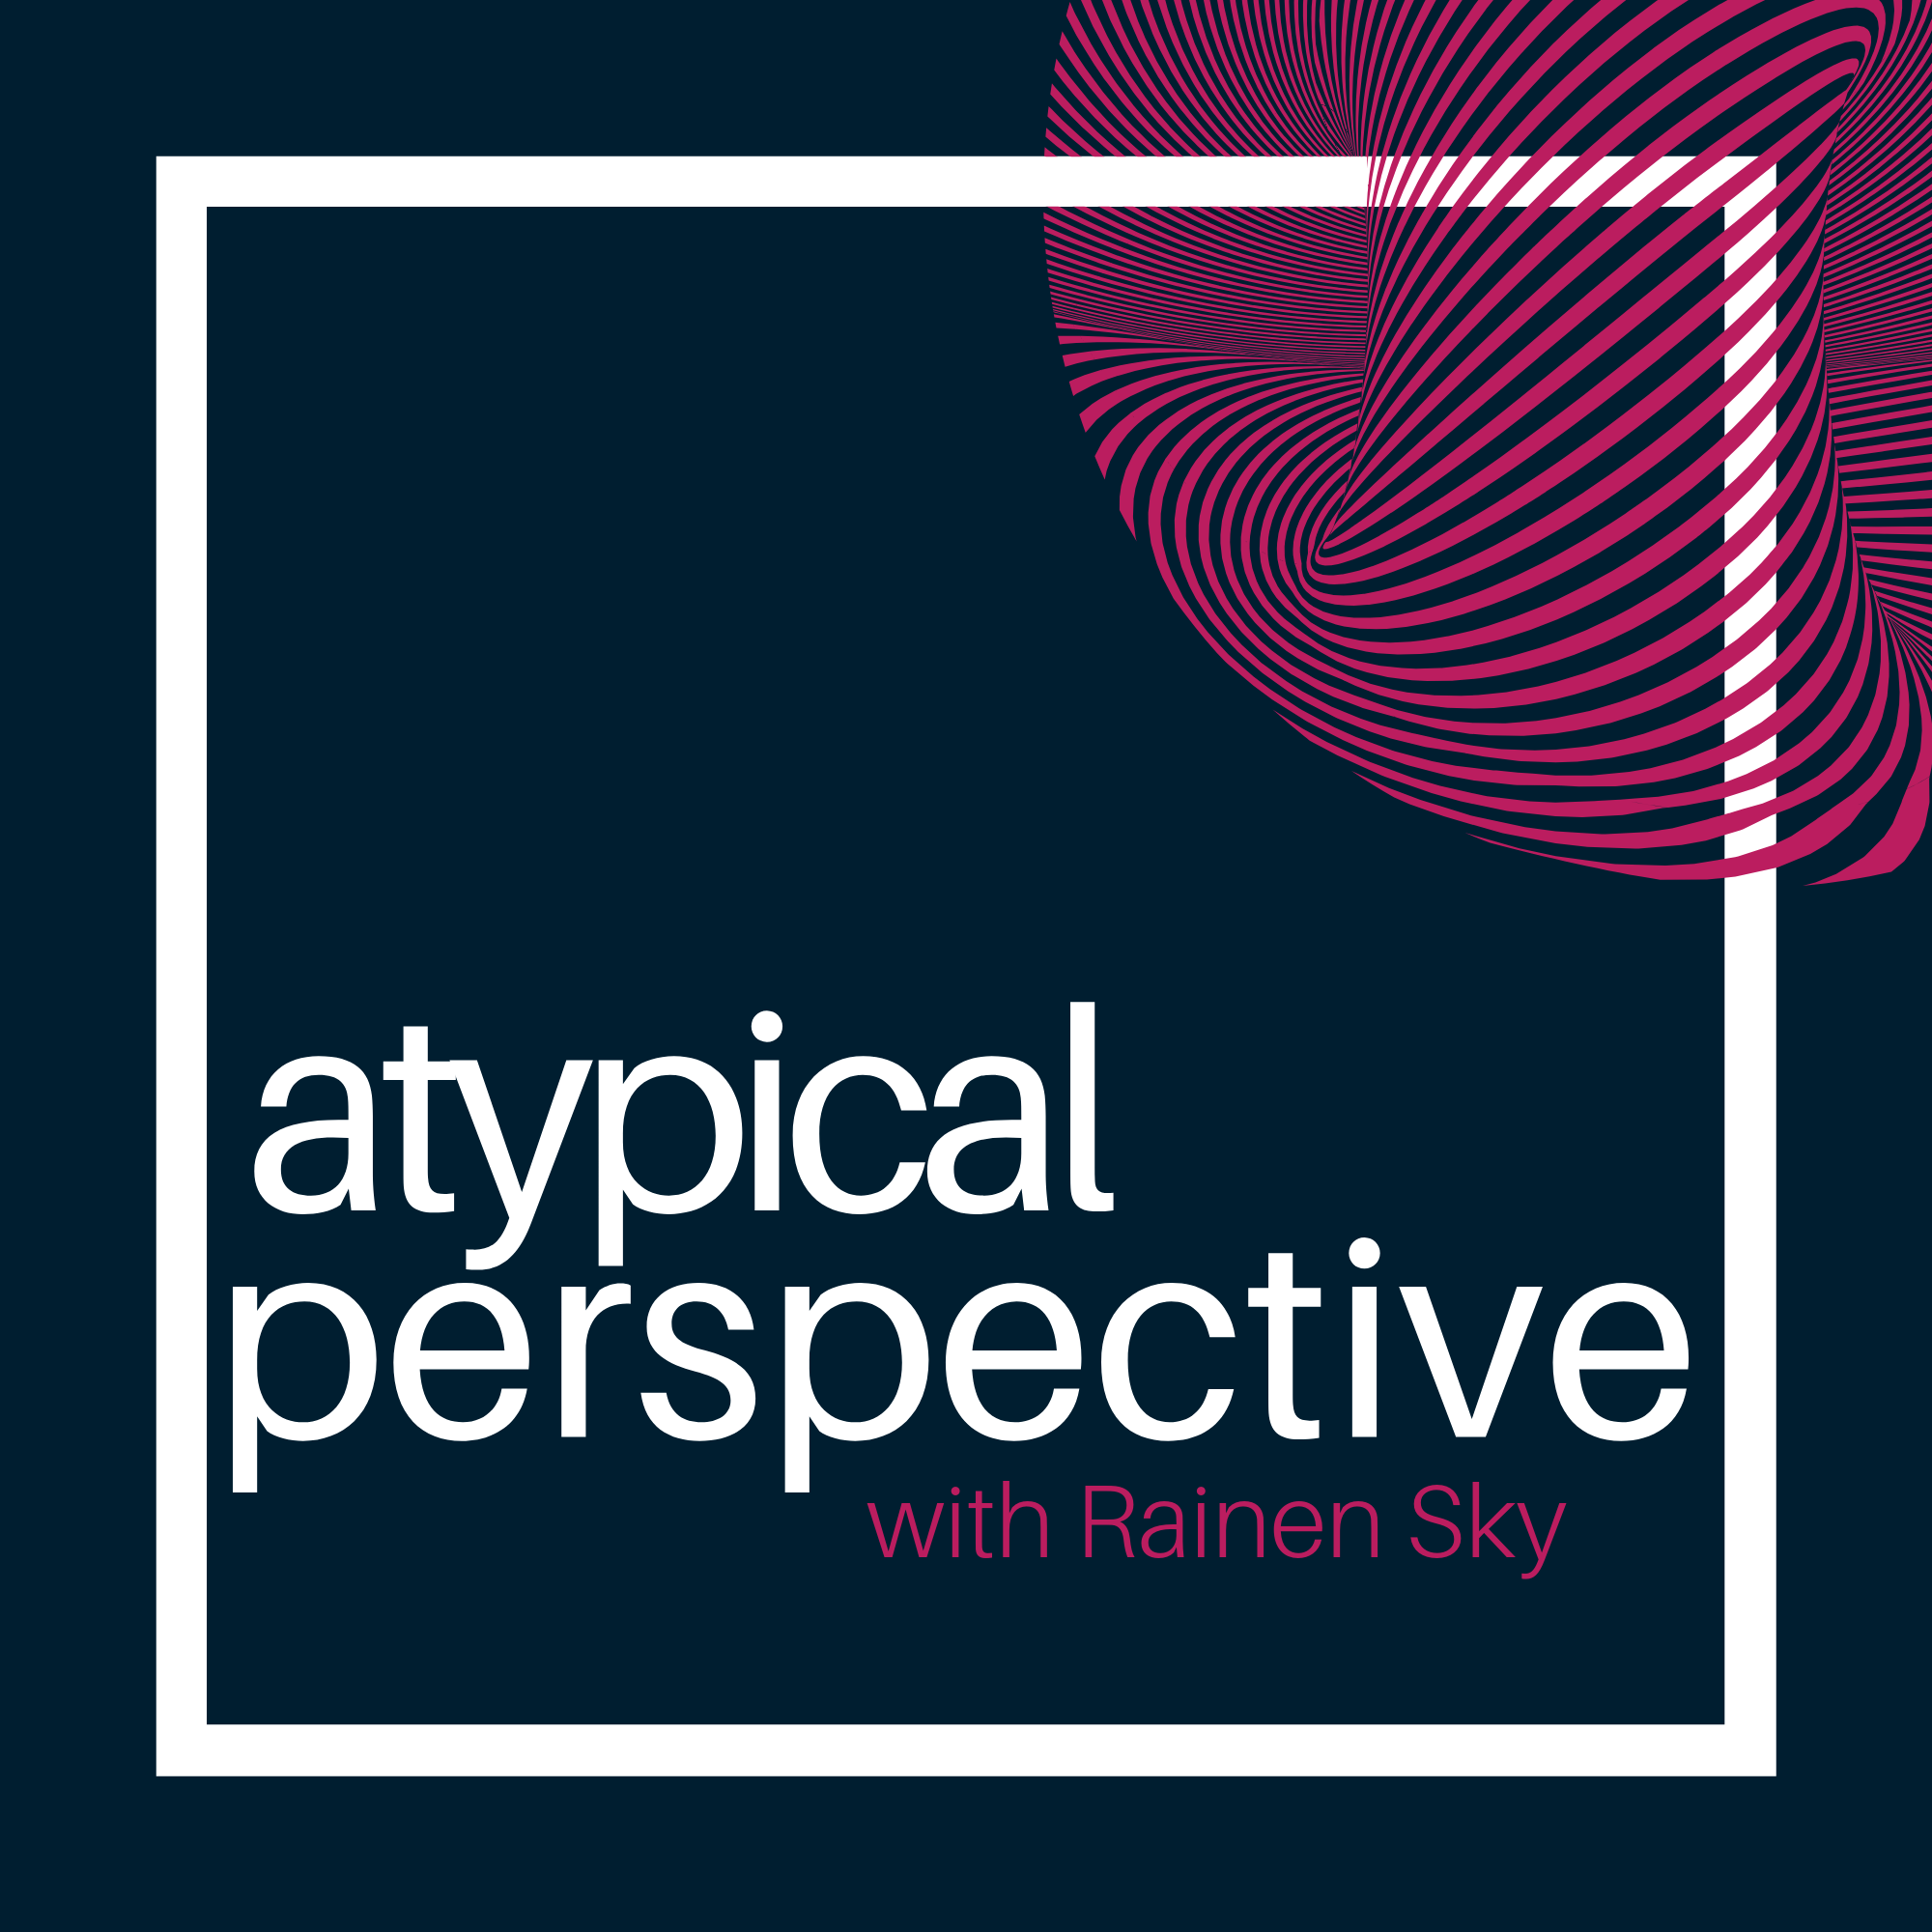 atypicalperspective